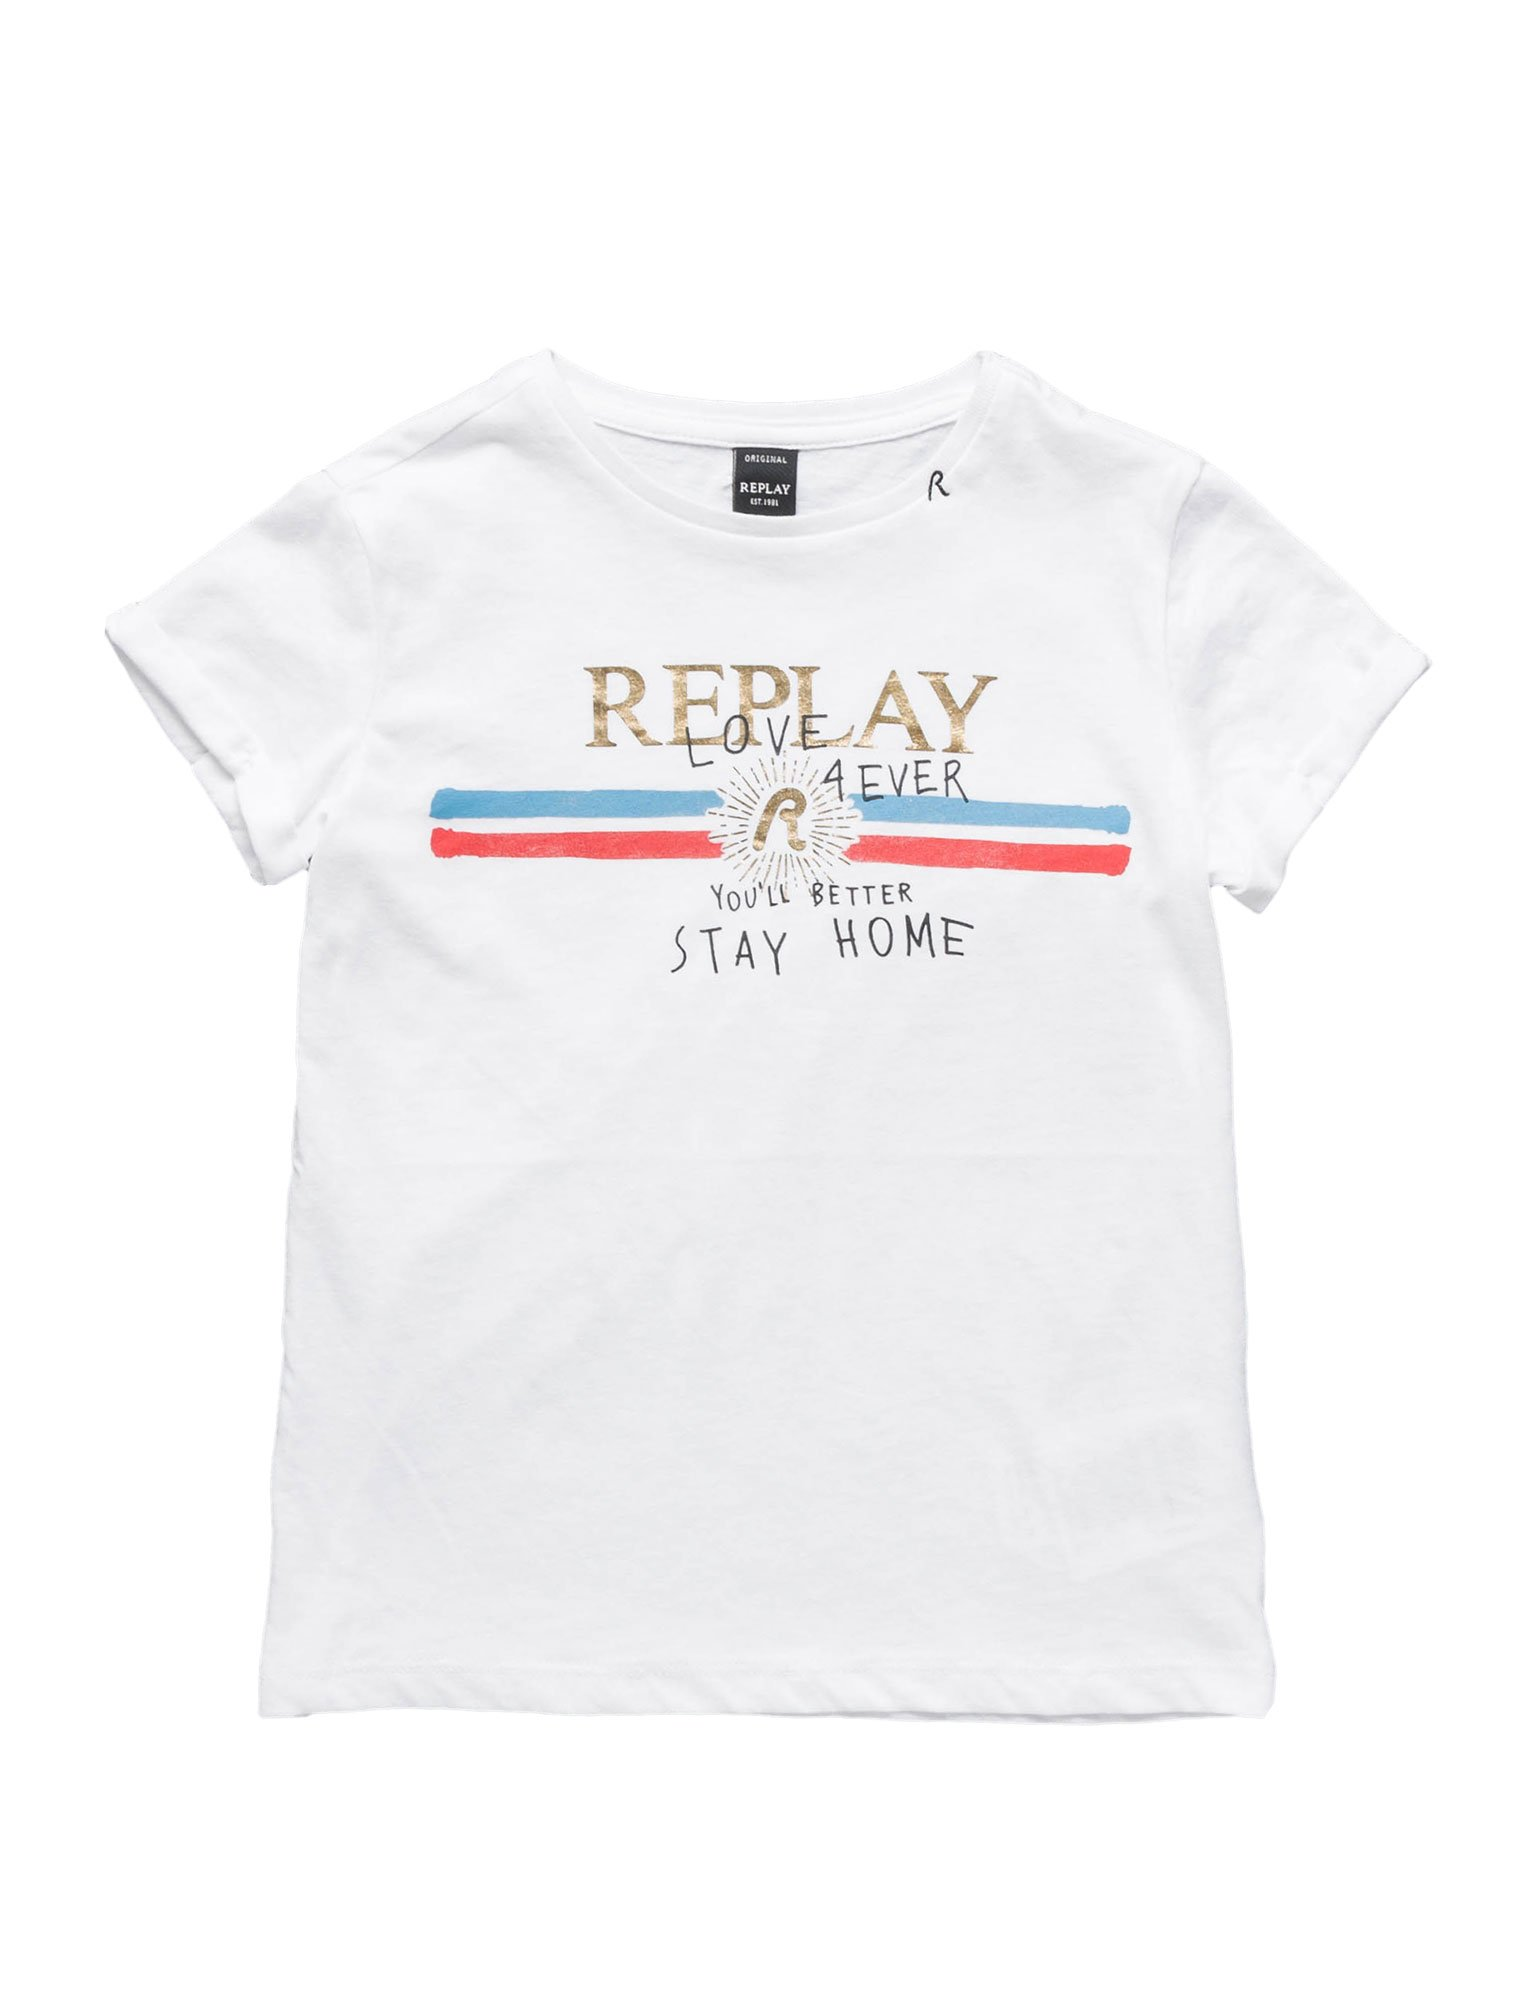 Replay Printed Cotton Girl's Jersey White T-Shirt In Size 12 Years White